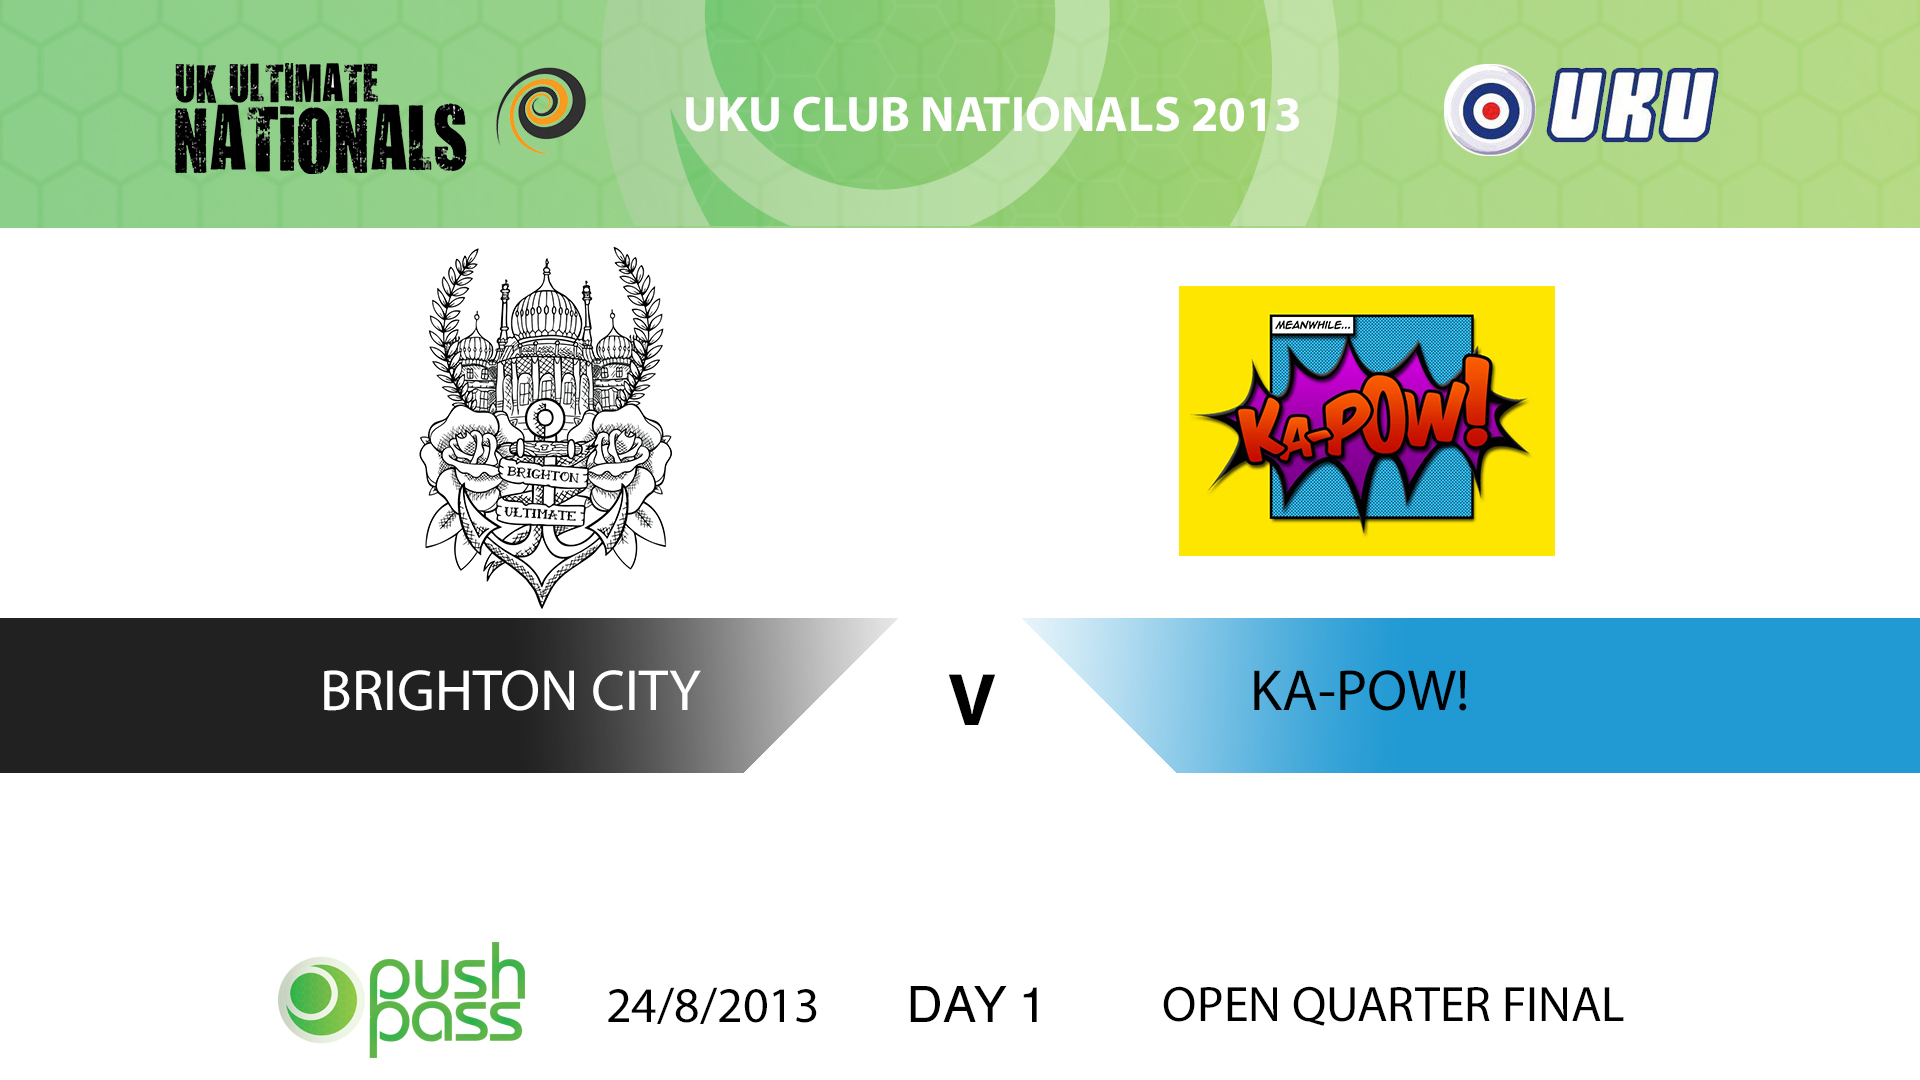 UKU Club Nationals 2013: Brighton City v Ka-Pow!